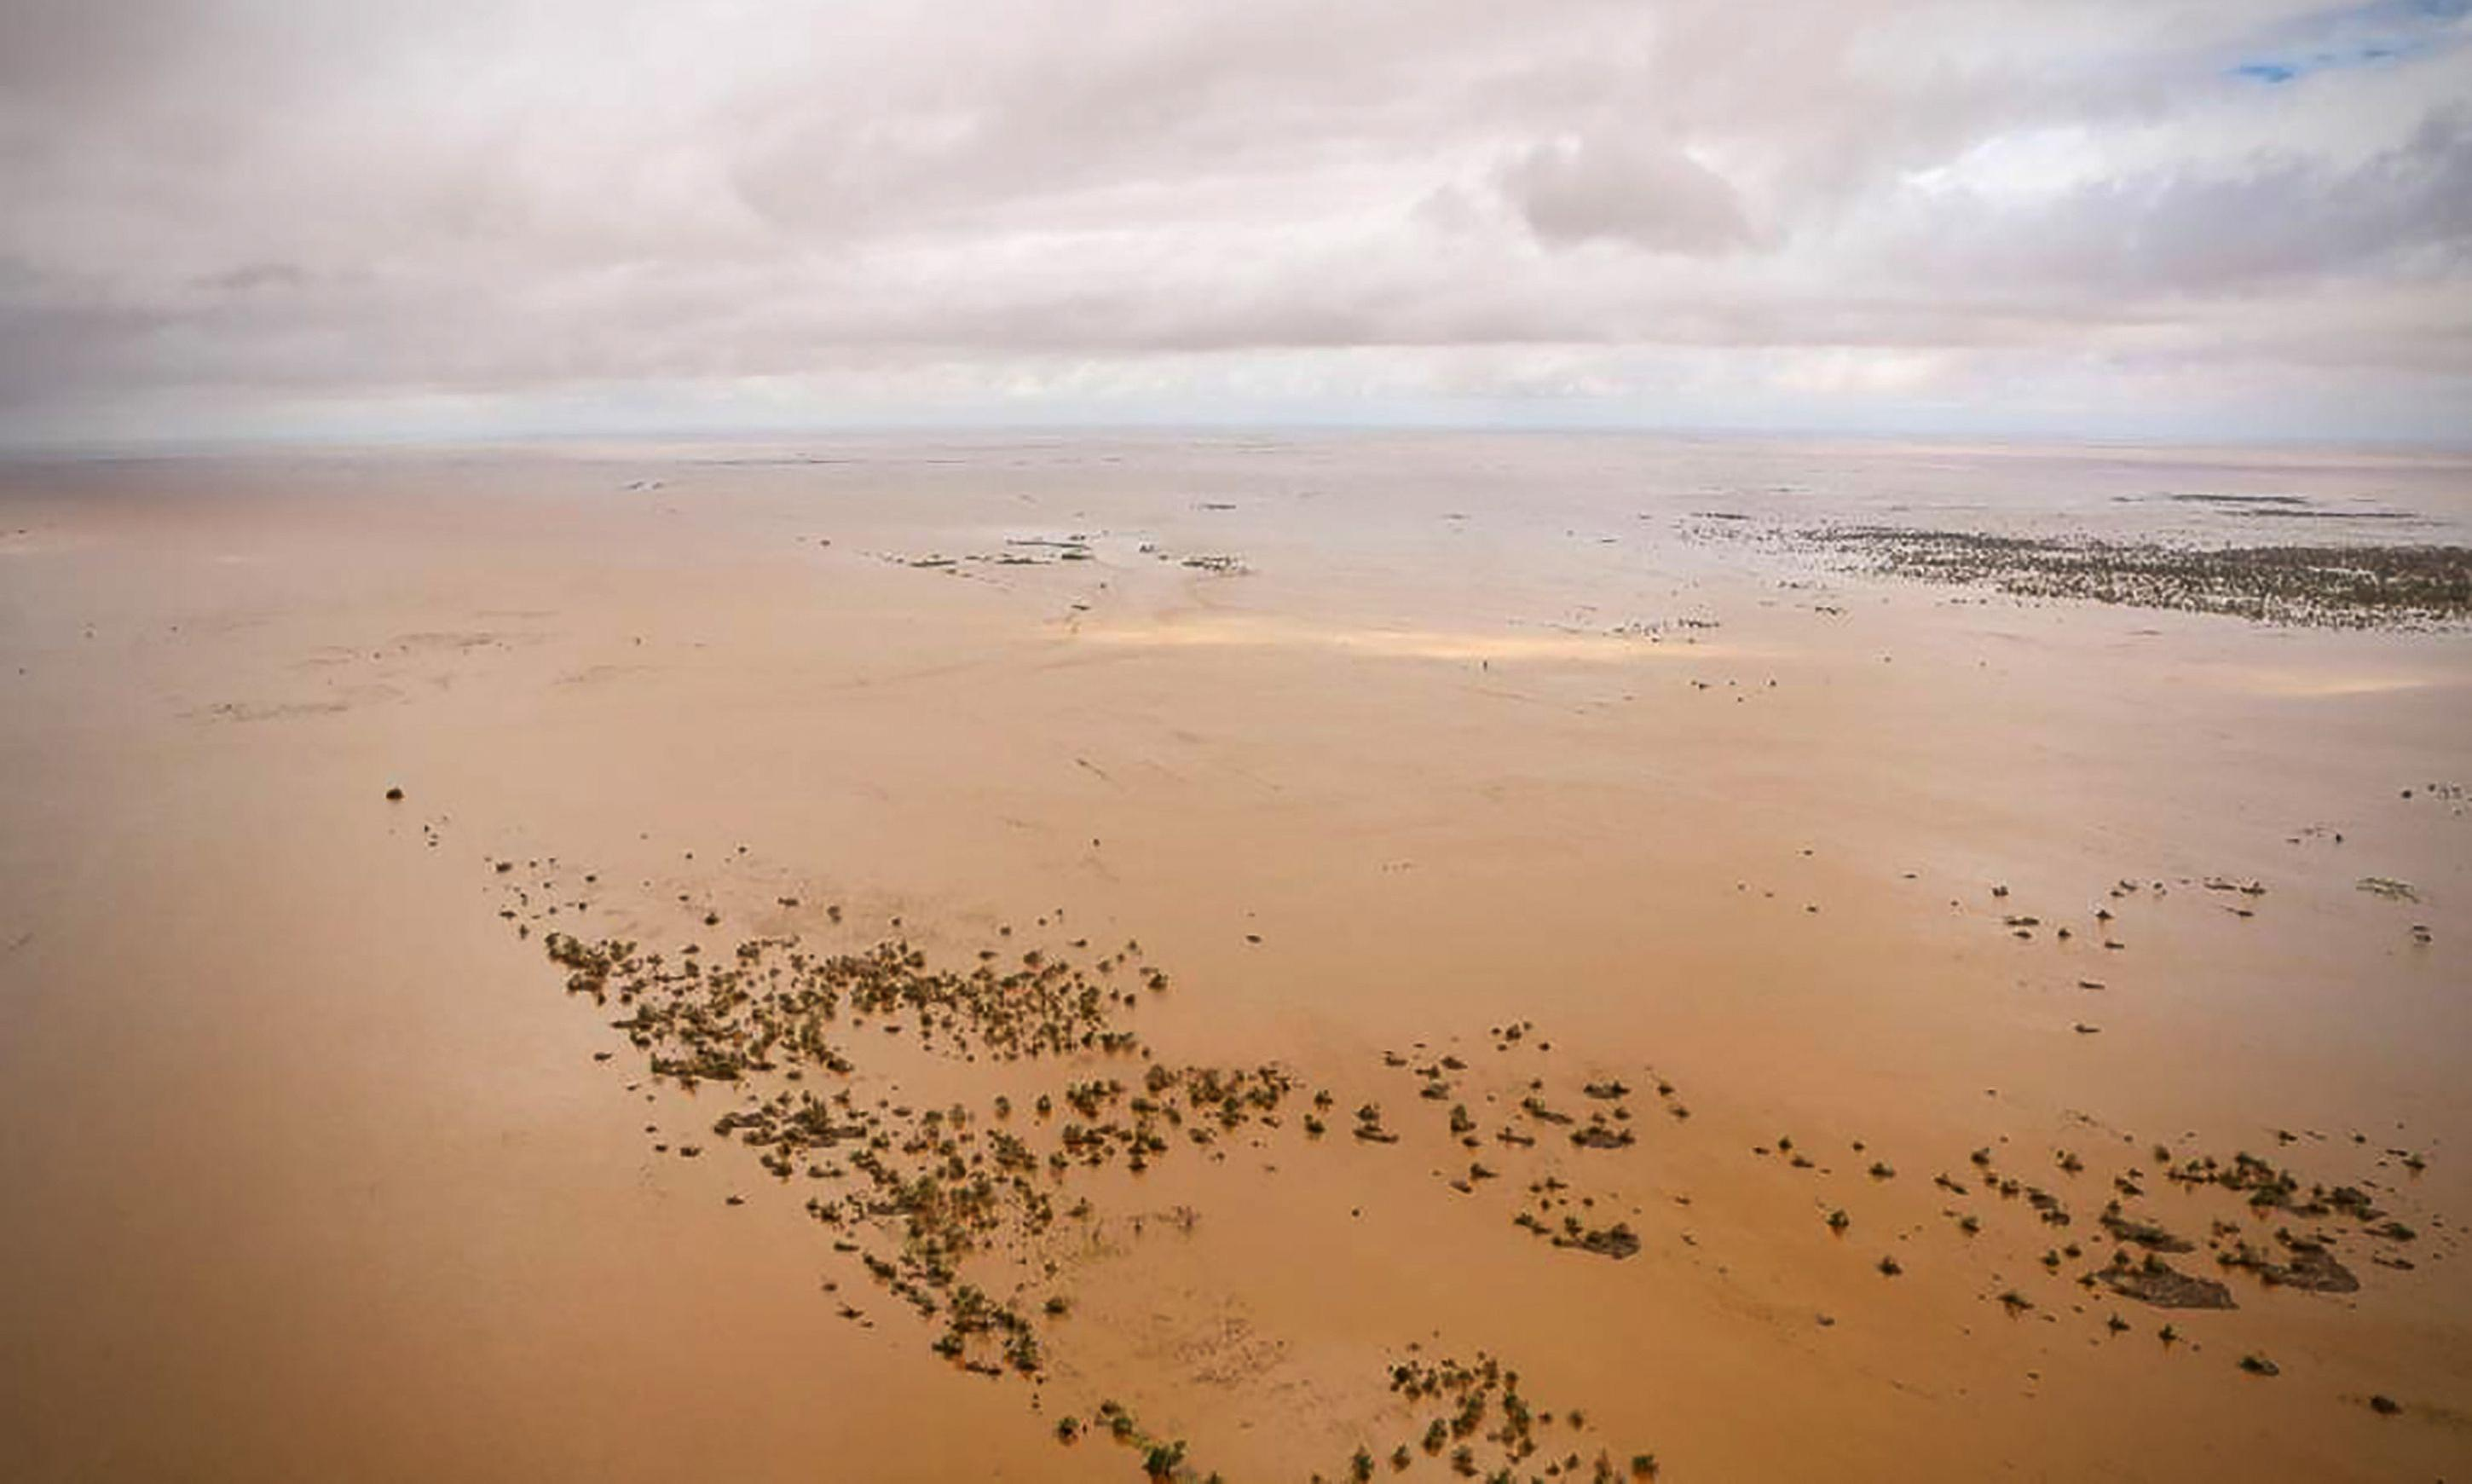 Cyclone Idai brings devastation to Mozambique – visual guide